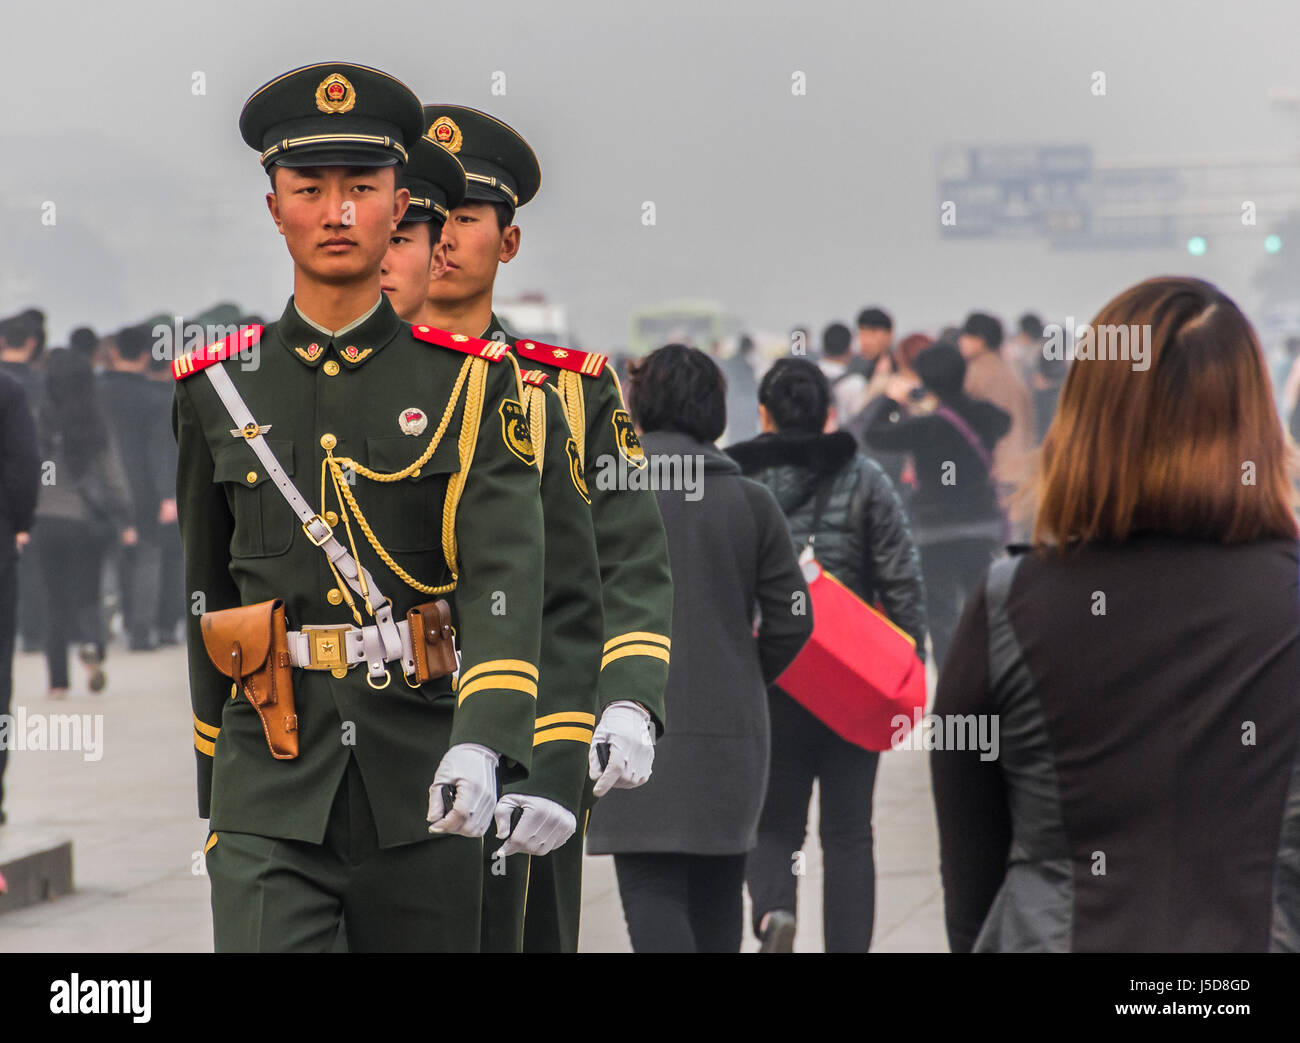 BEIJING, CHINA-26th MARCH 2014:- The Soldiers are in Tianamen square entrance to the Forbidden City Stock Photo